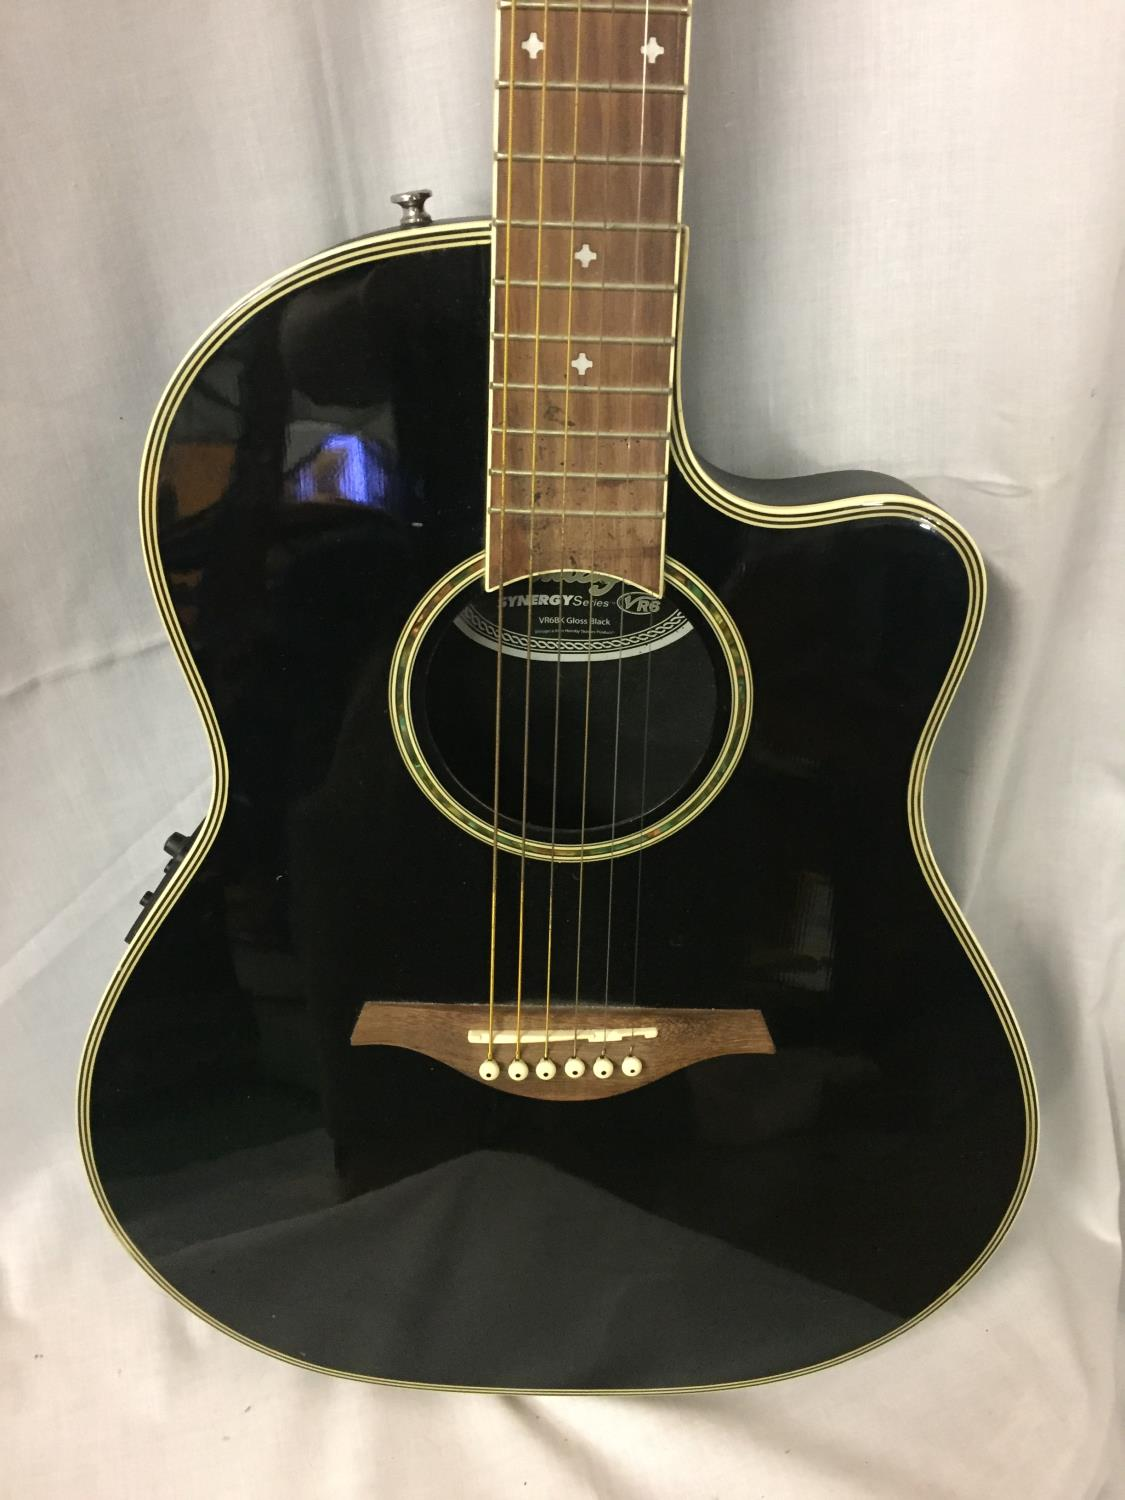 A BLACK VINTAGE SYNERGY SERIES GUITAR - Image 4 of 10